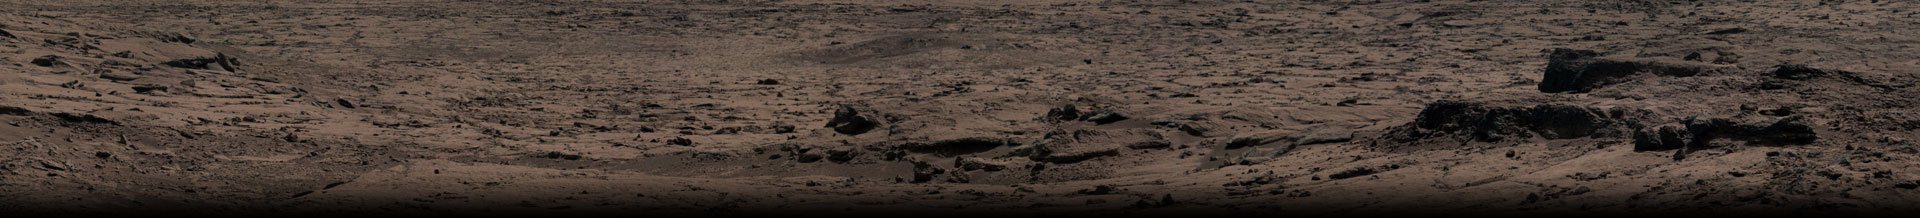 Image: Mars Surface, NASA